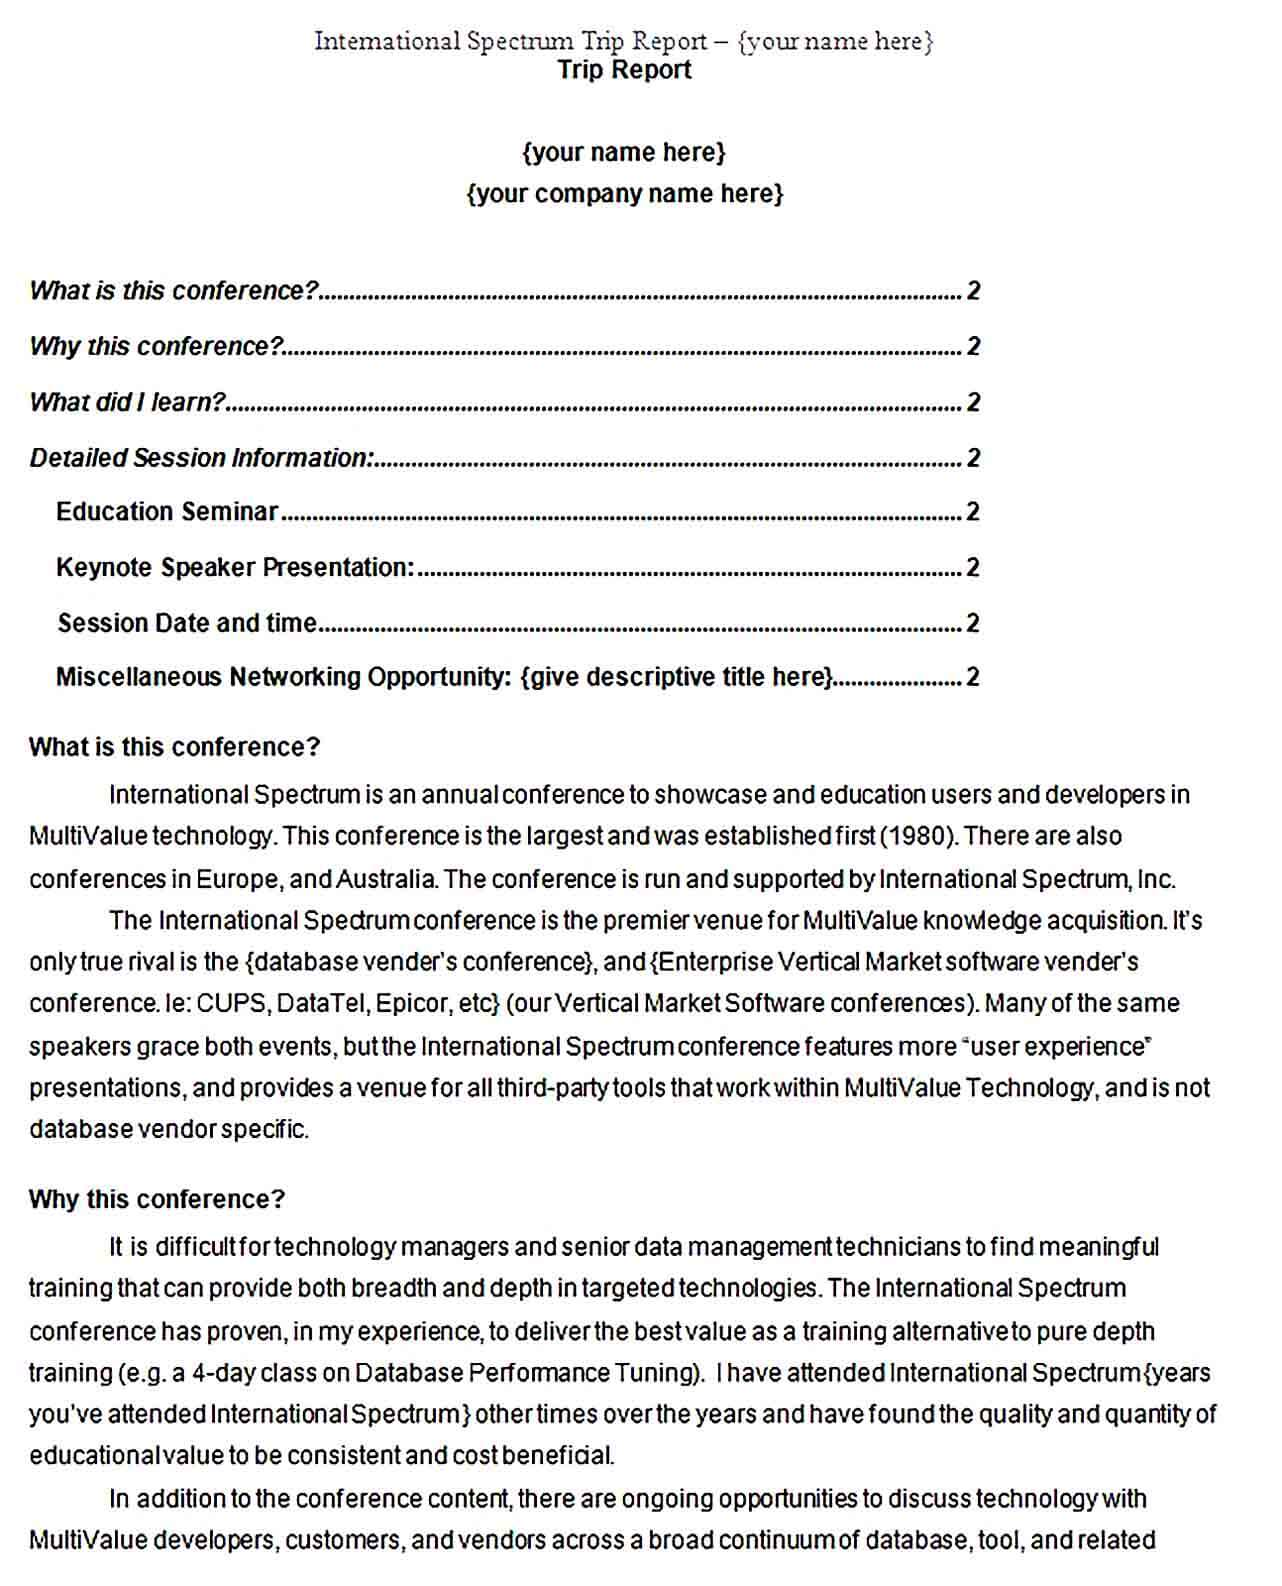 Sample conference trip report template